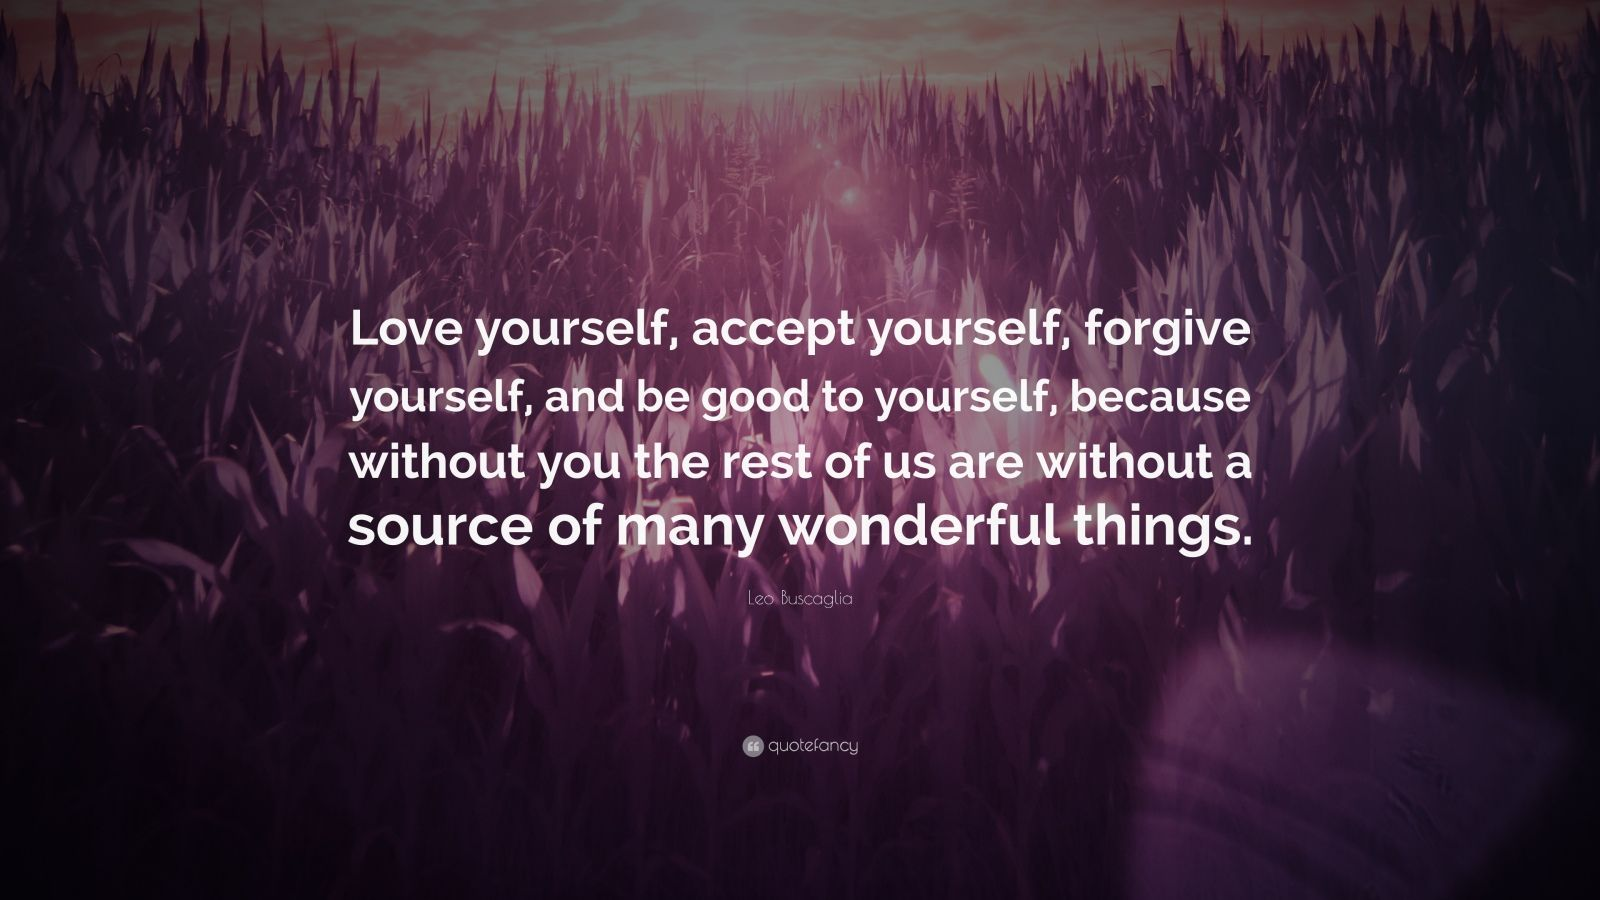 Moving On Quotes Wallpaper Leo Buscaglia Quote Love Yourself Accept Yourself